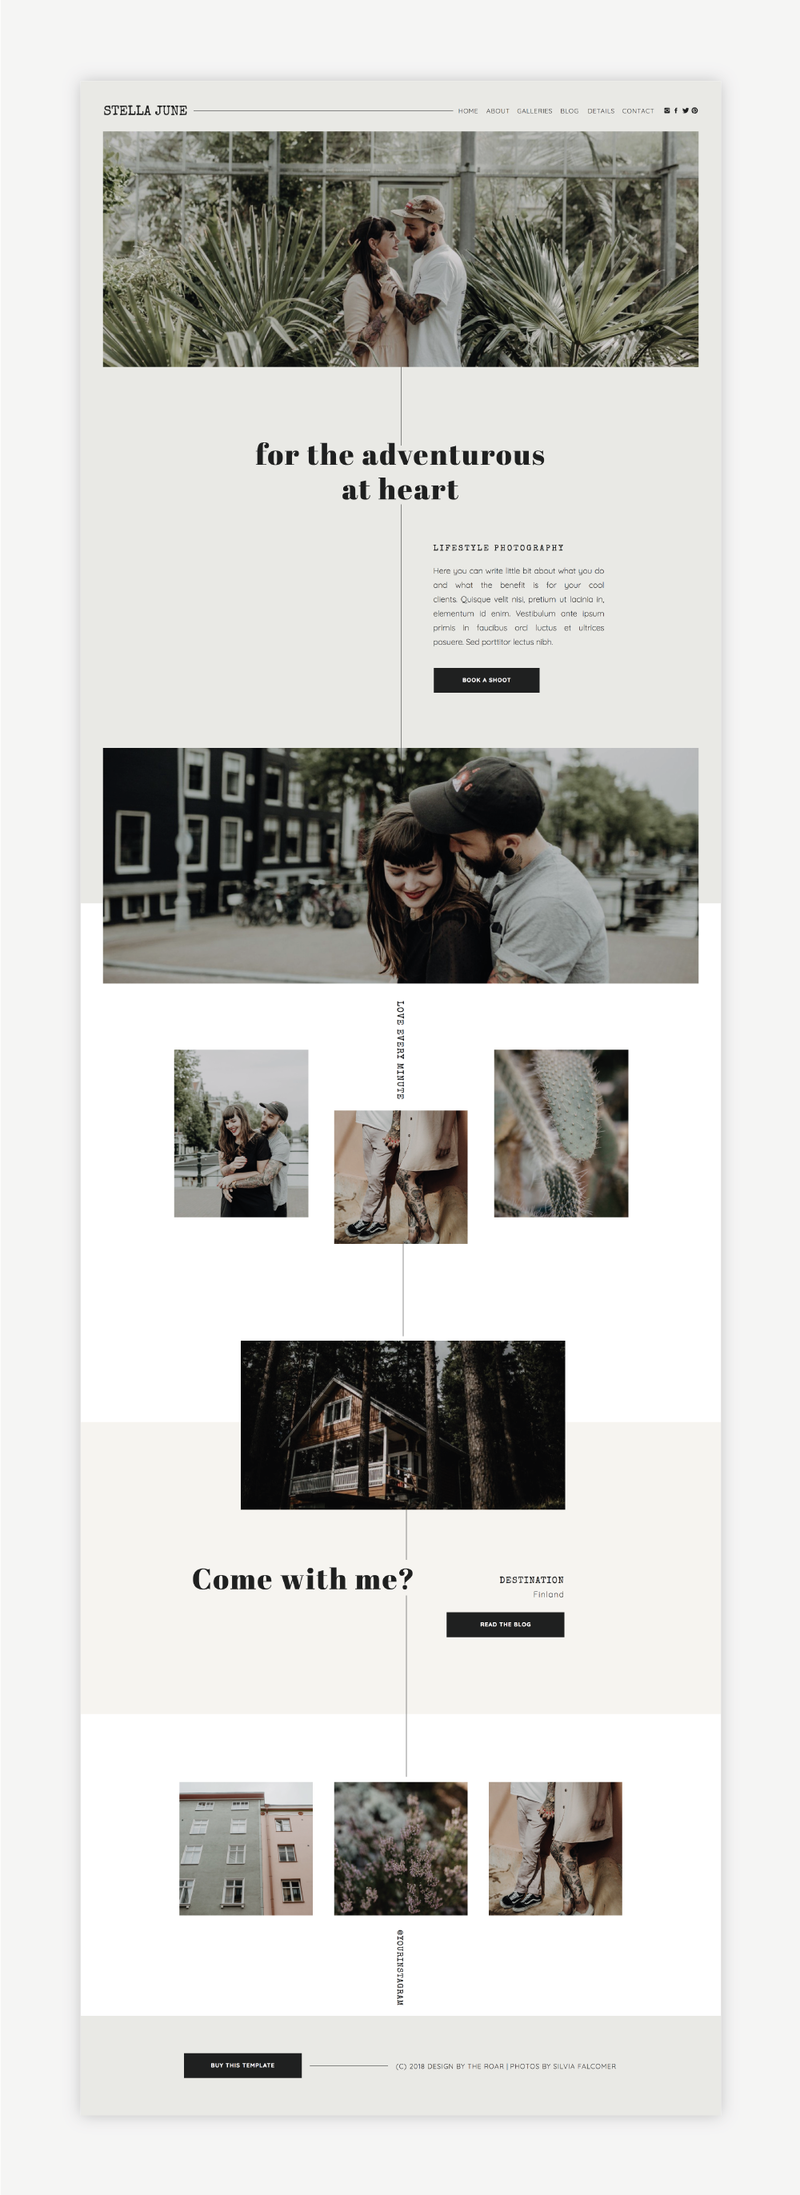 The-Roar-Showit-Web-Design-Template-Stella-June-Image-Shop